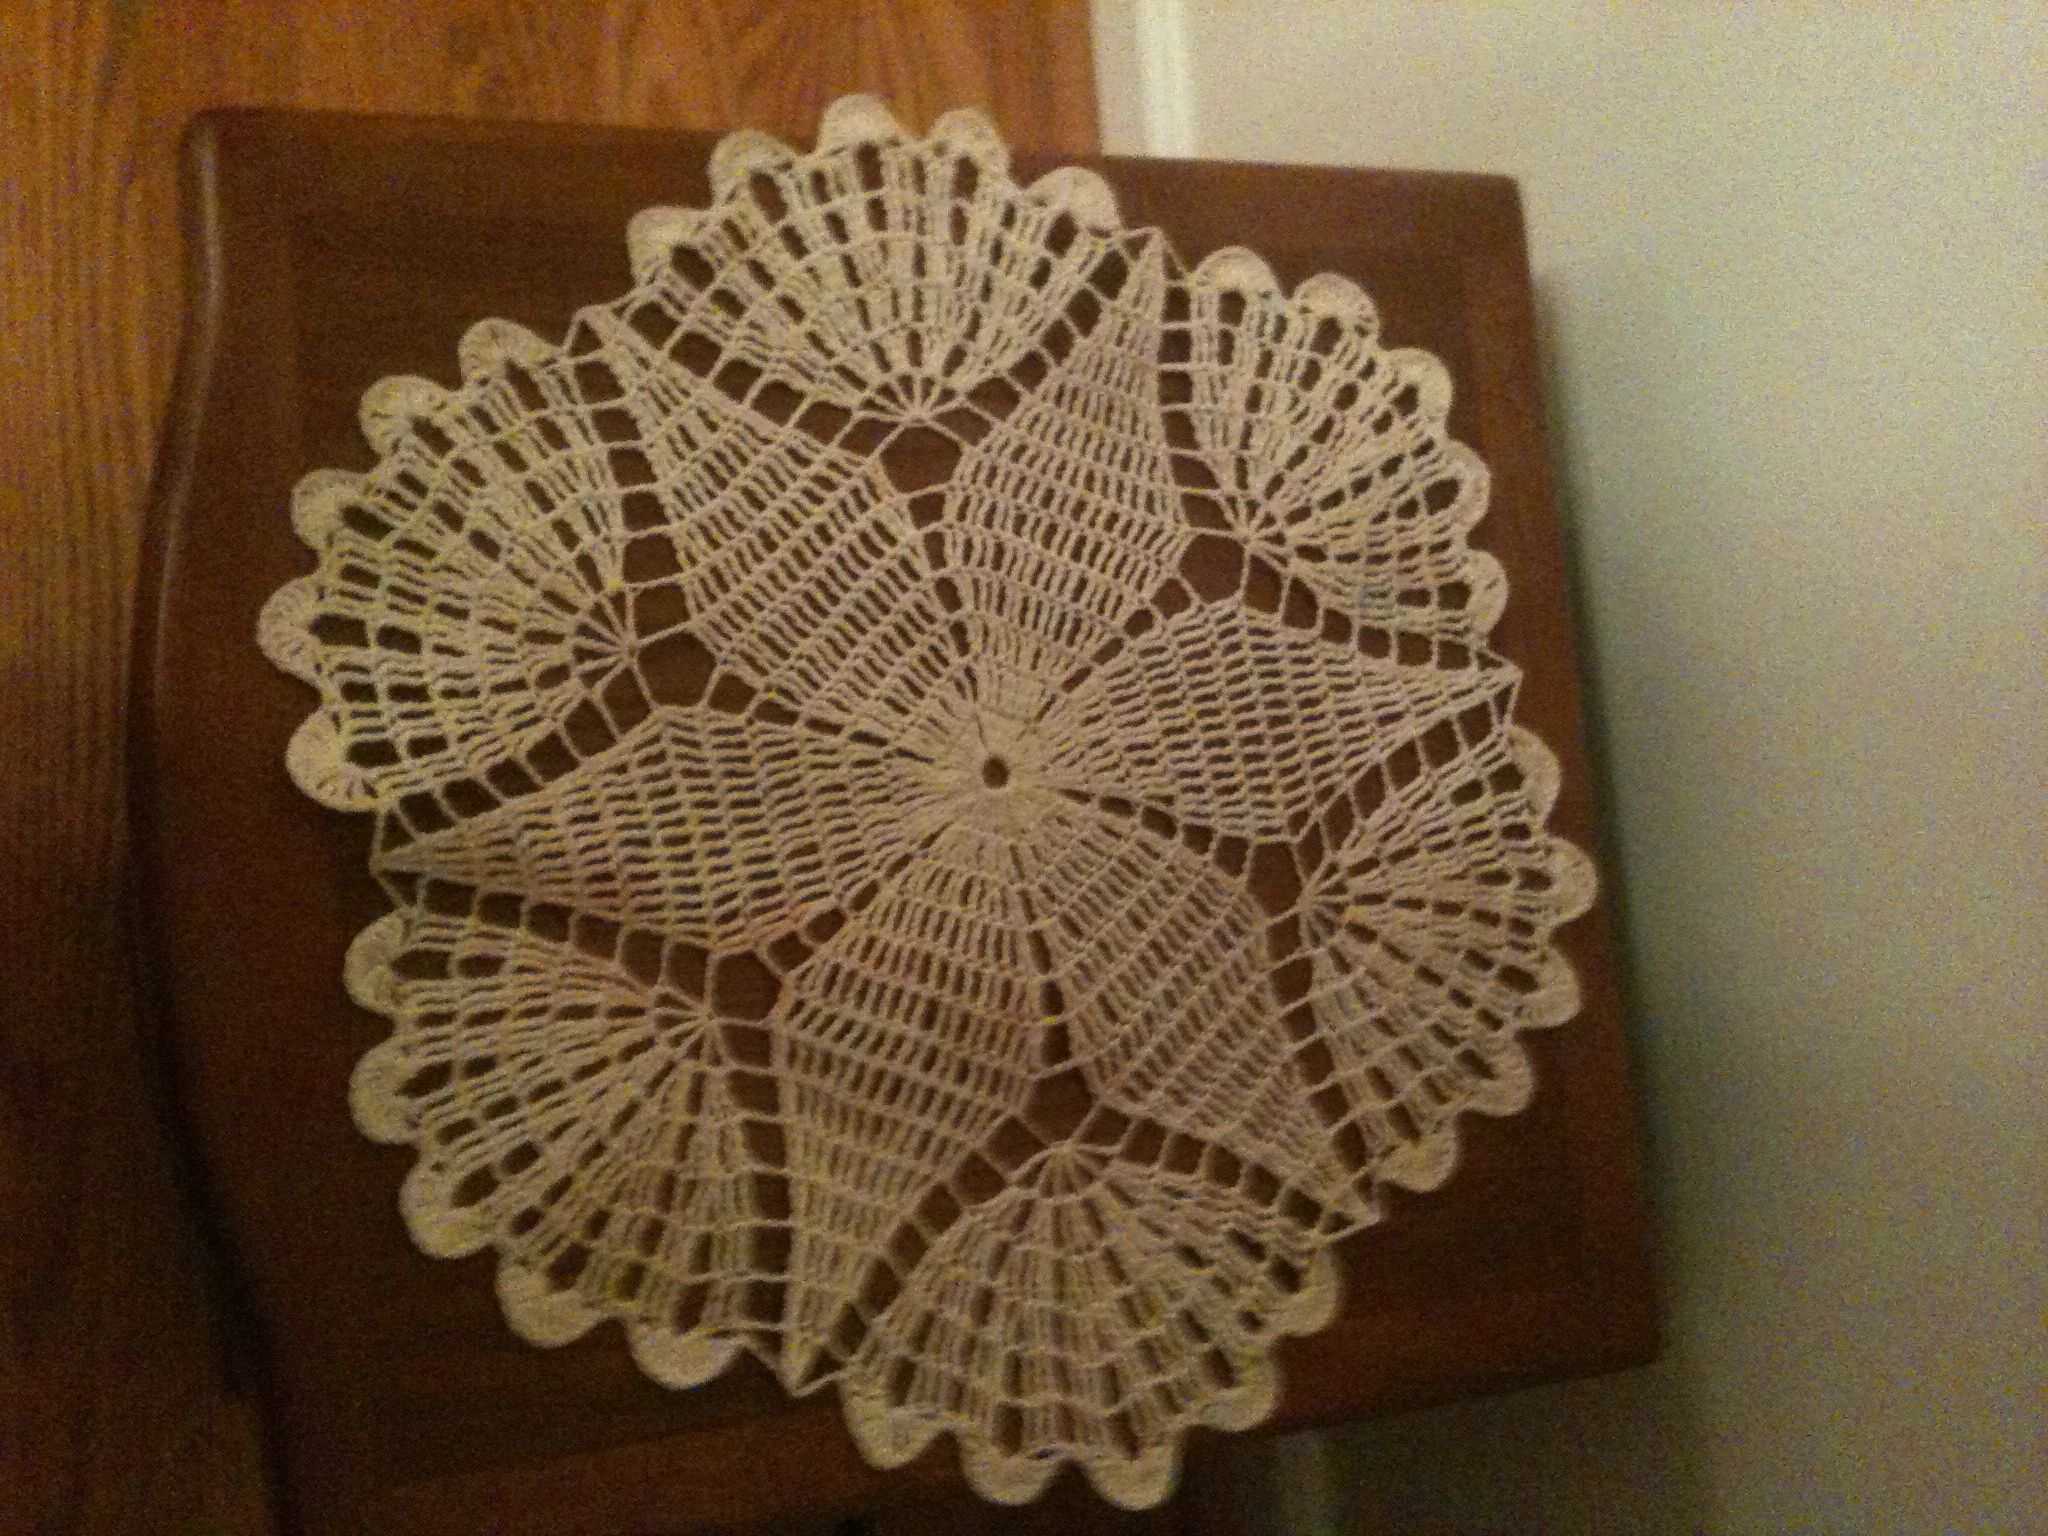 Round End Table Doily My Husband Crocheted That Matches The